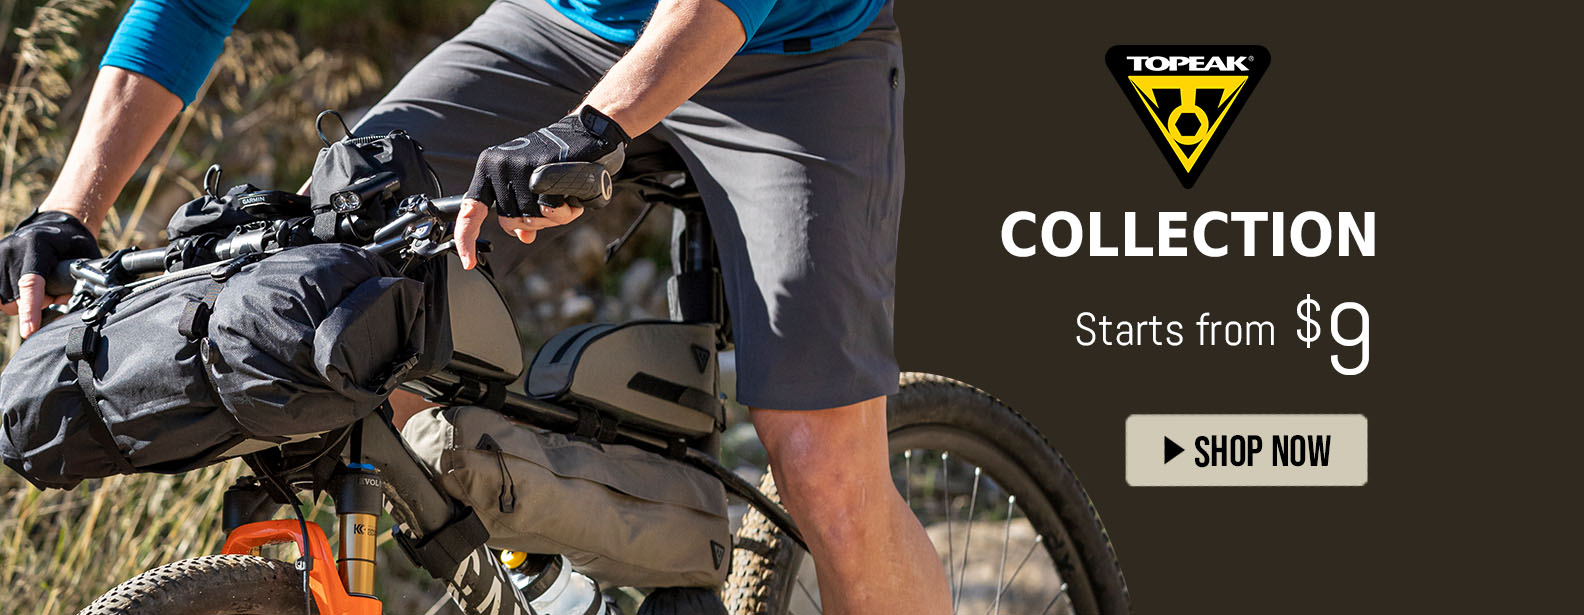 Buy Topeak Collection